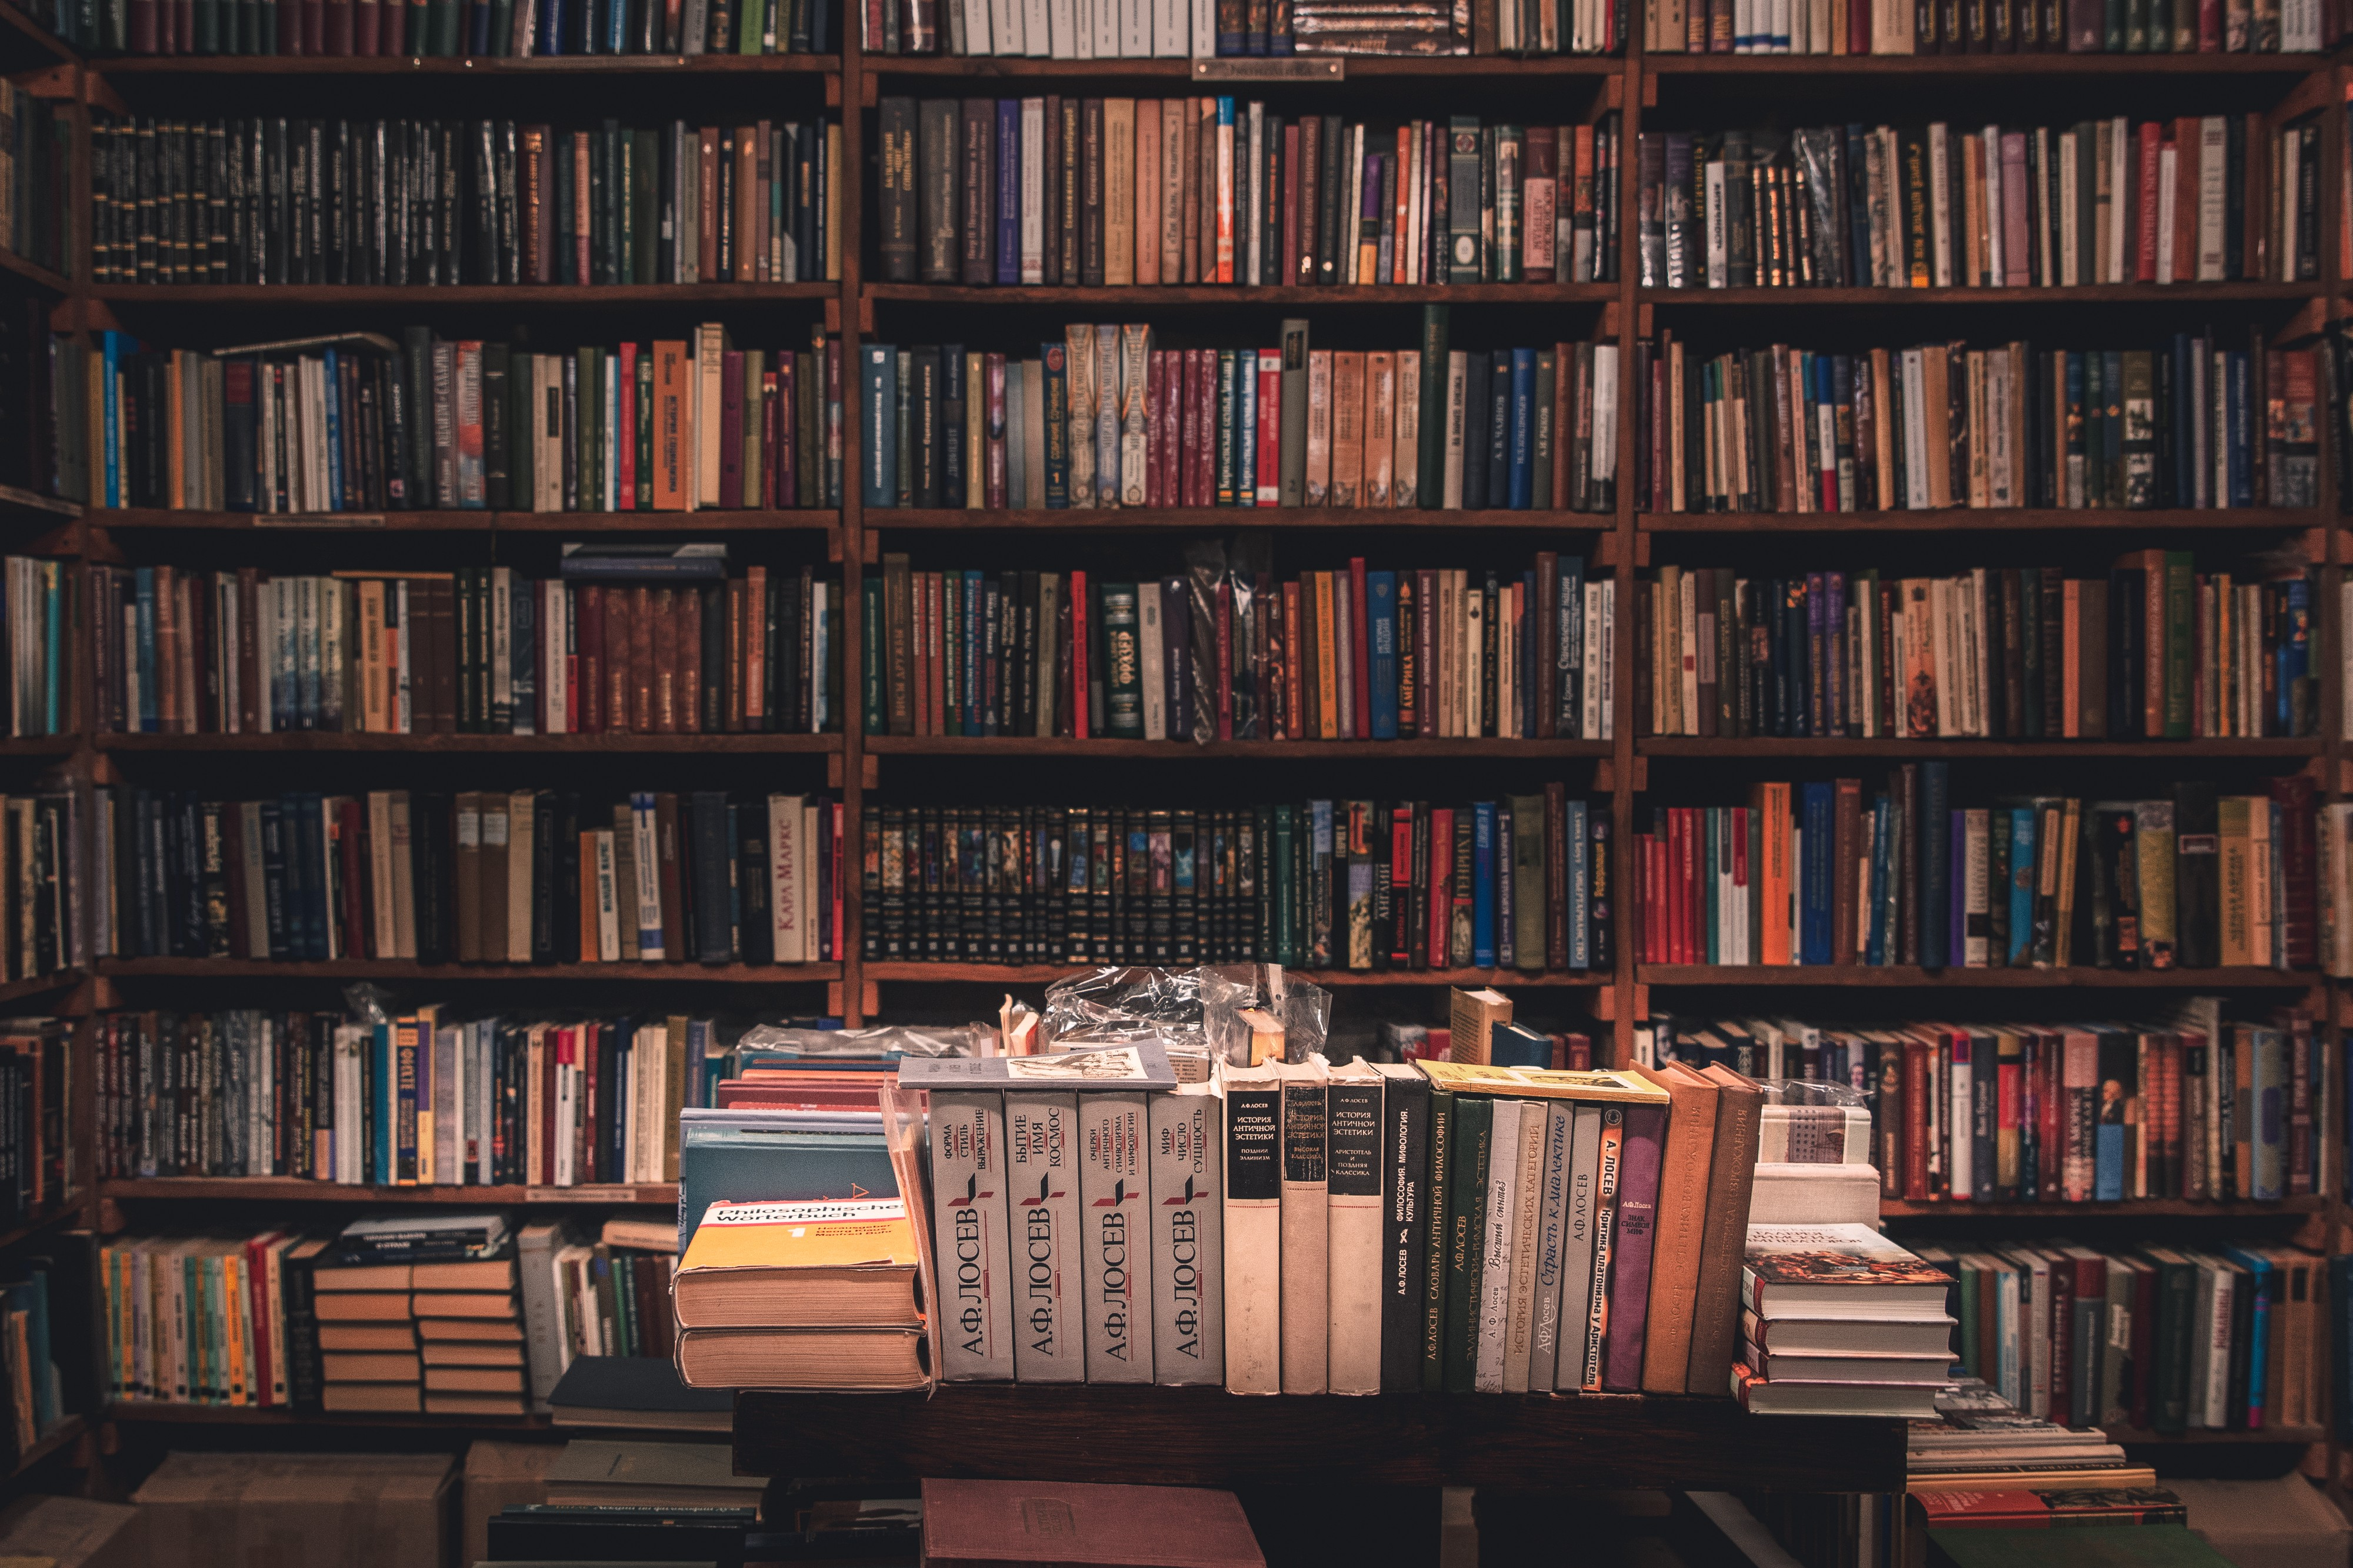 Shelves stuffed with books. Books on a table in the foreground.